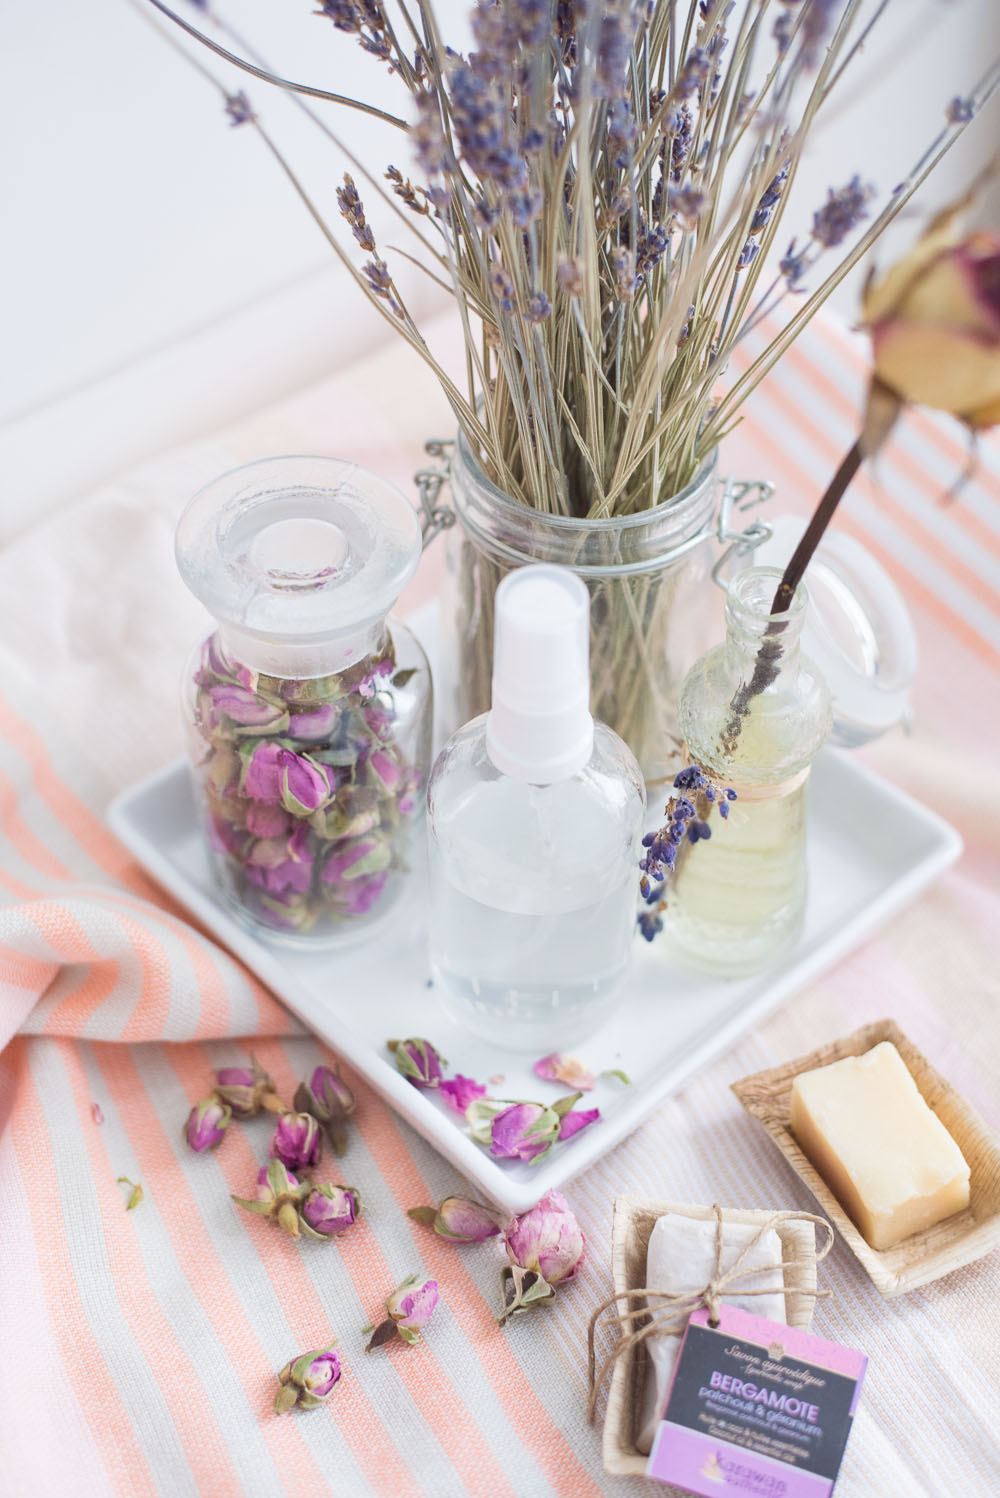 diy home spa (3 of 4)